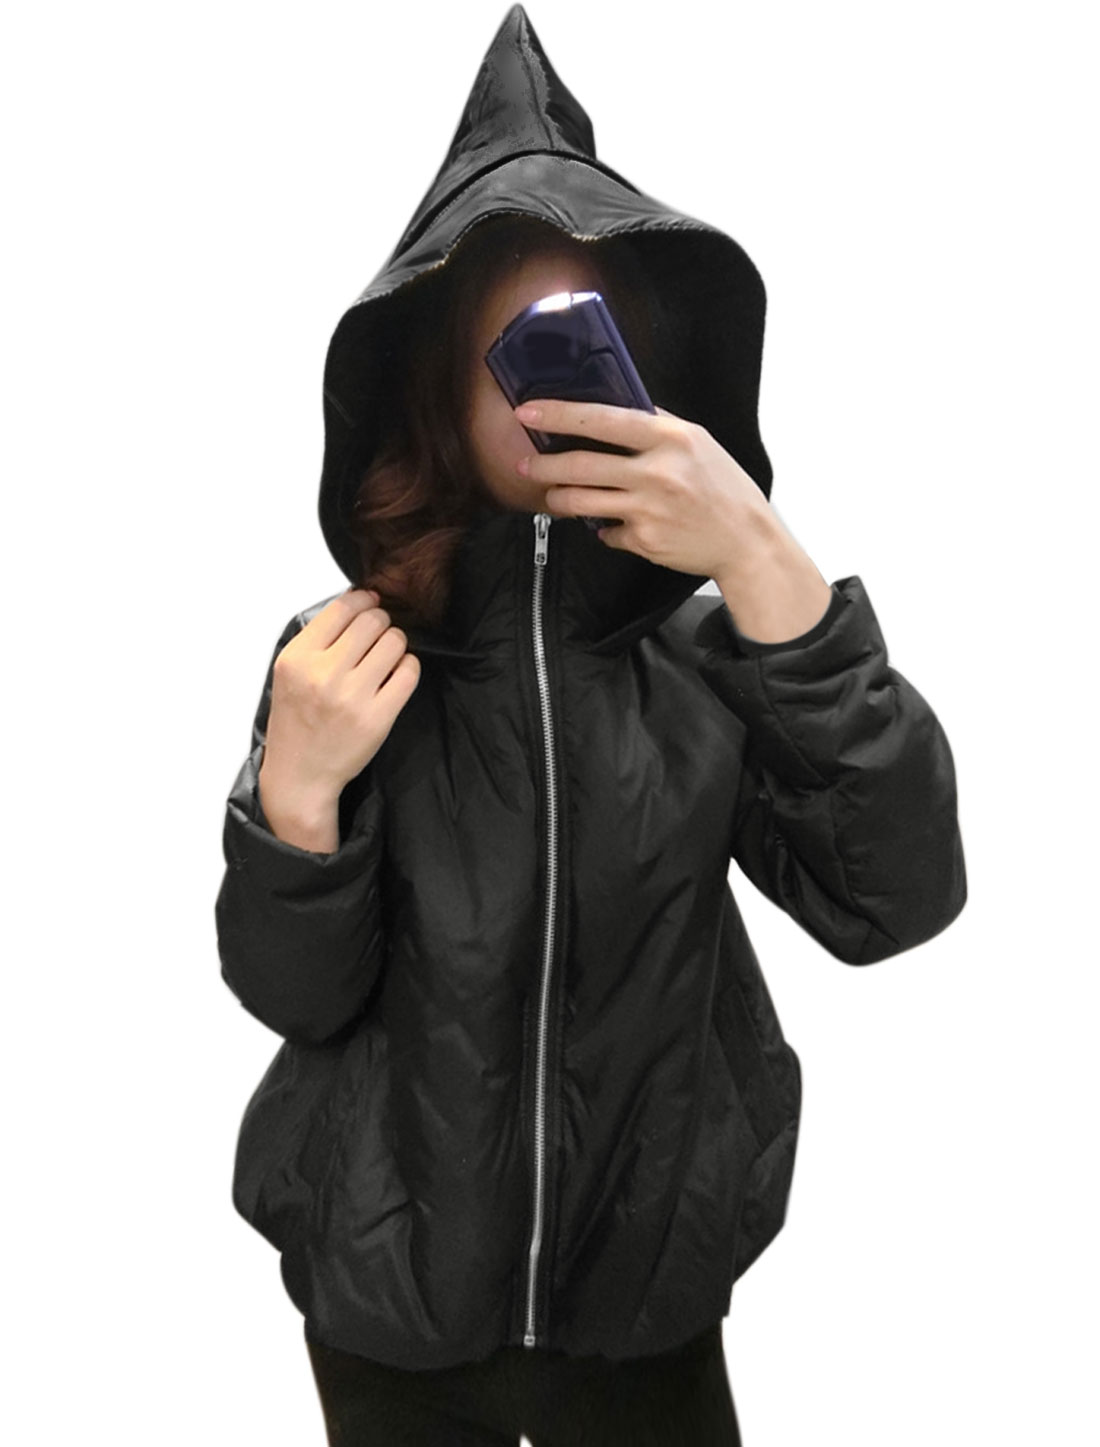 Woman Collared Pointed Hood Zip Closed Padded Coat Black S